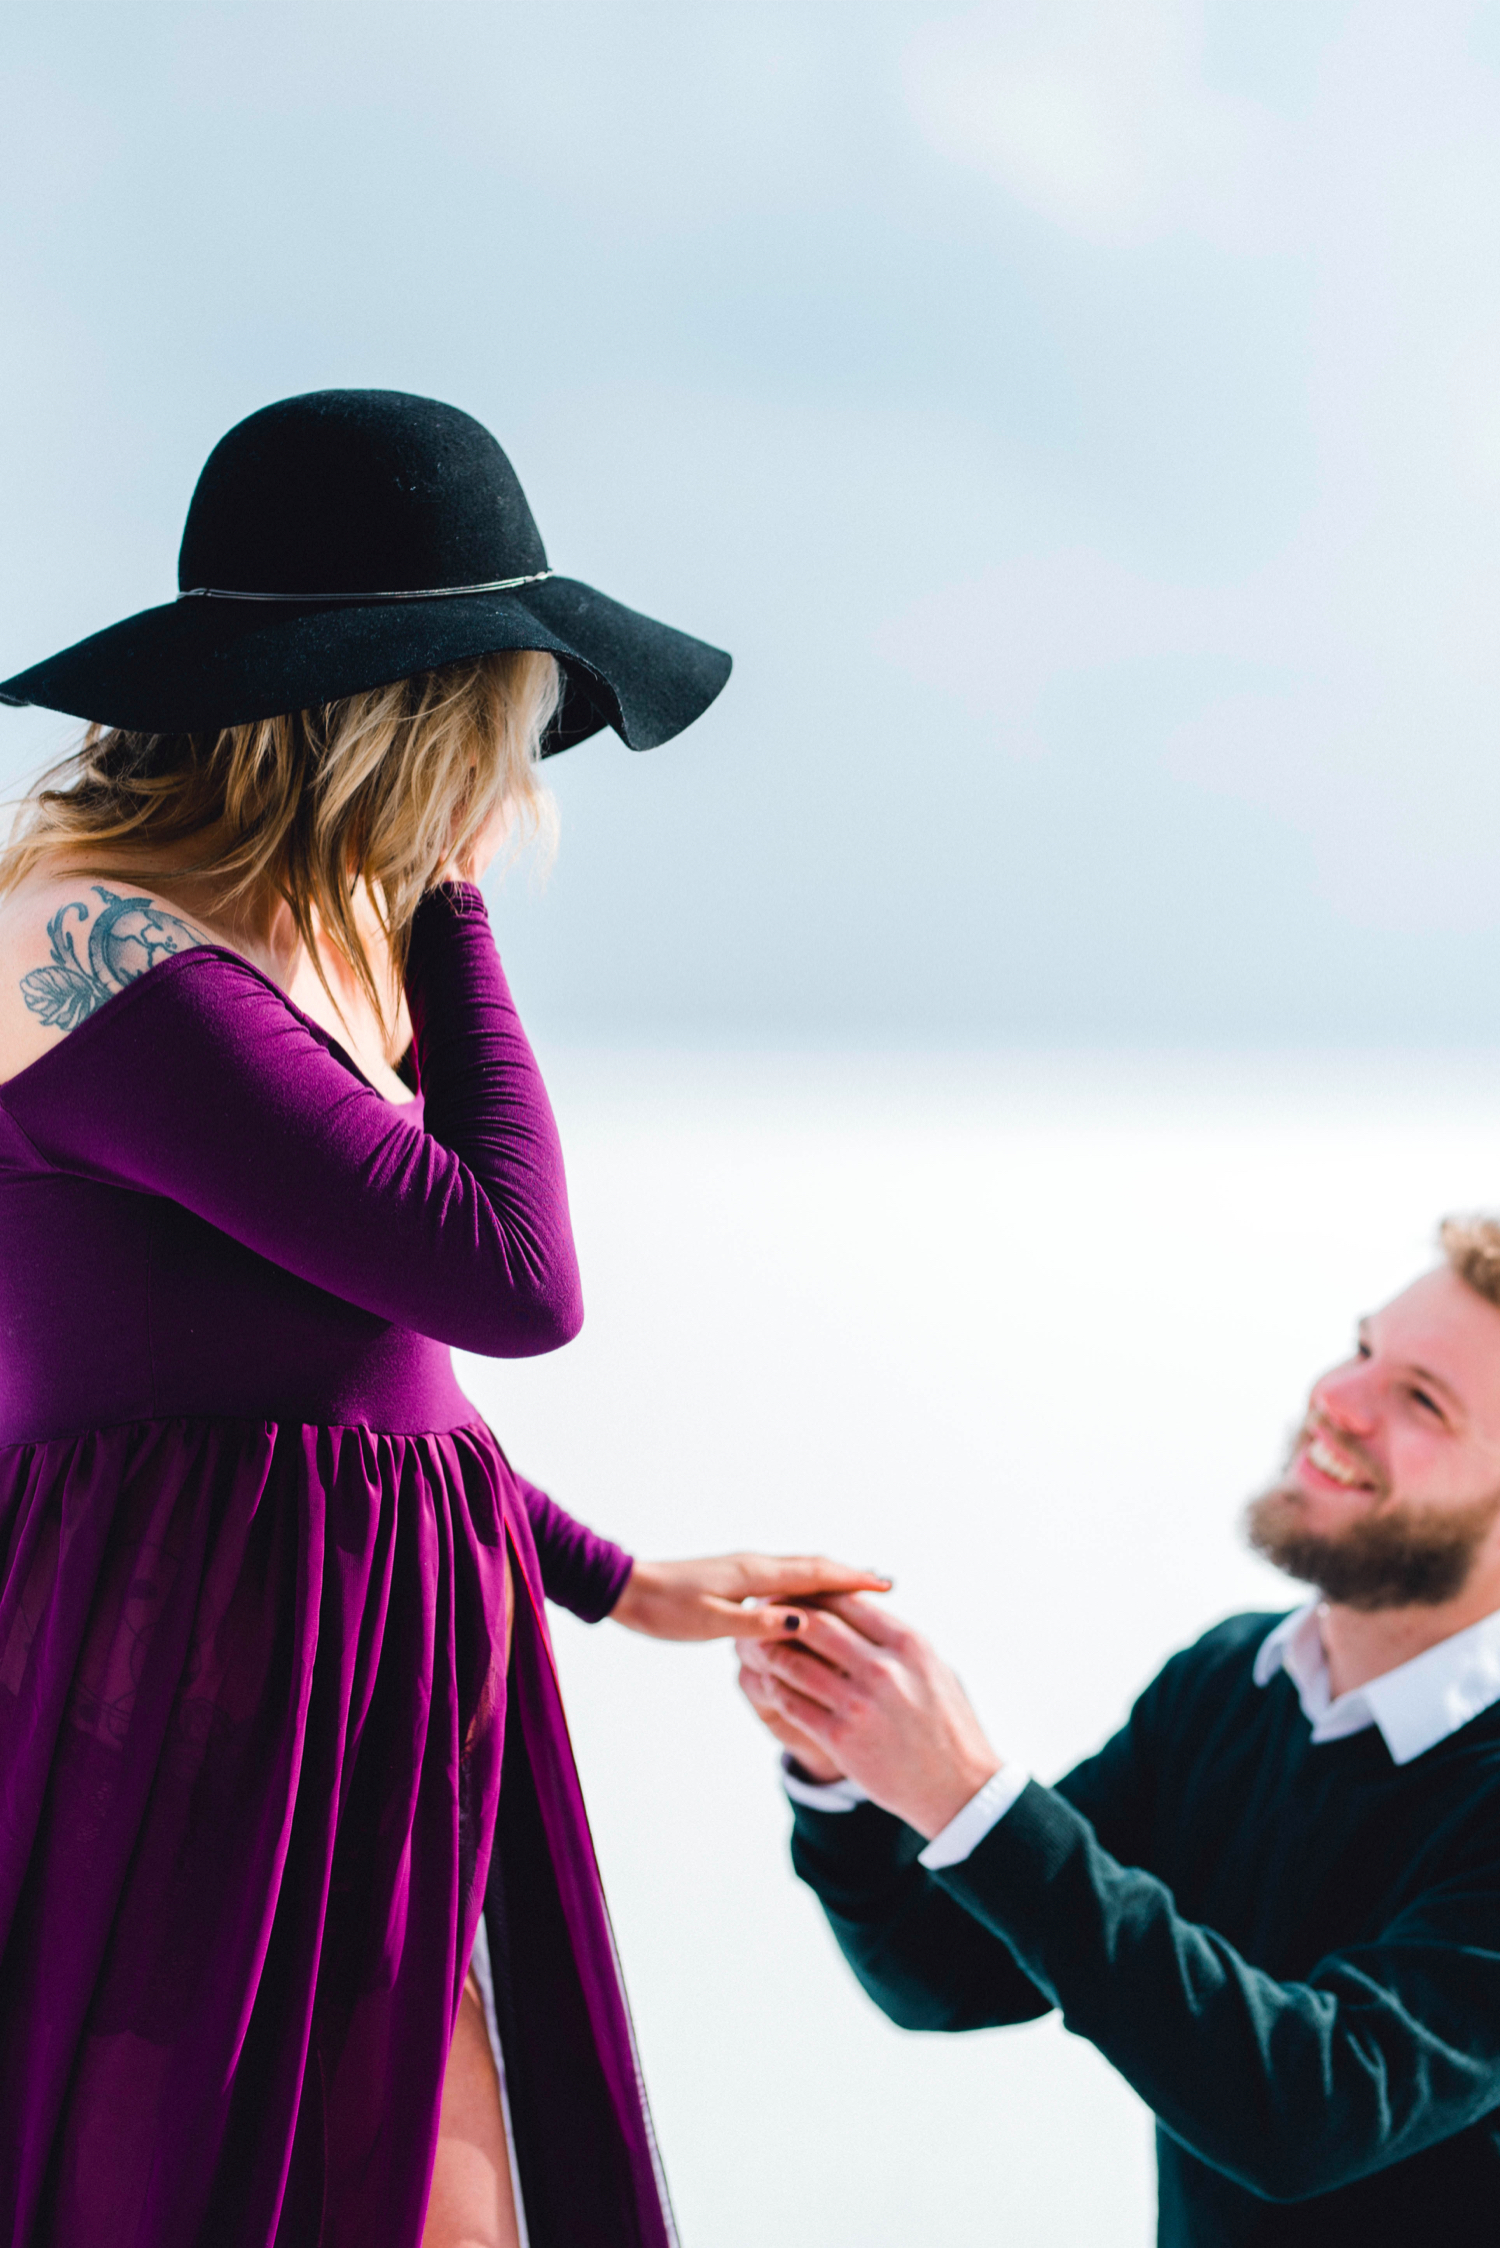 Image 6 of Maternity Shoot Turns into Surprise Marriage Proposal